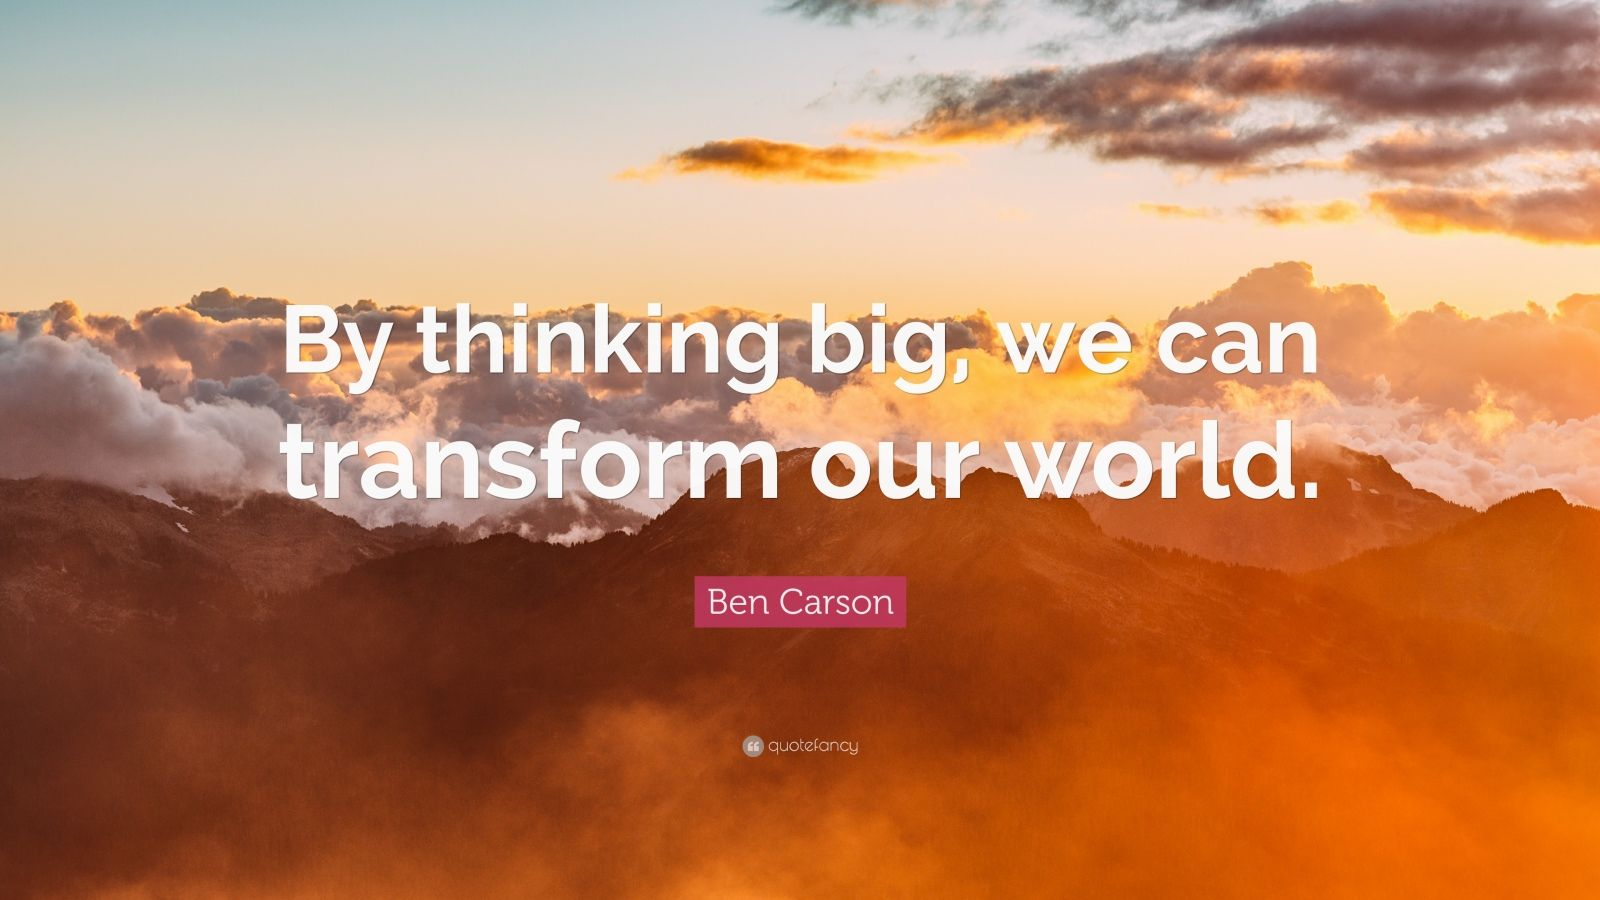 Ben Carson on the power of the mind - YouTube